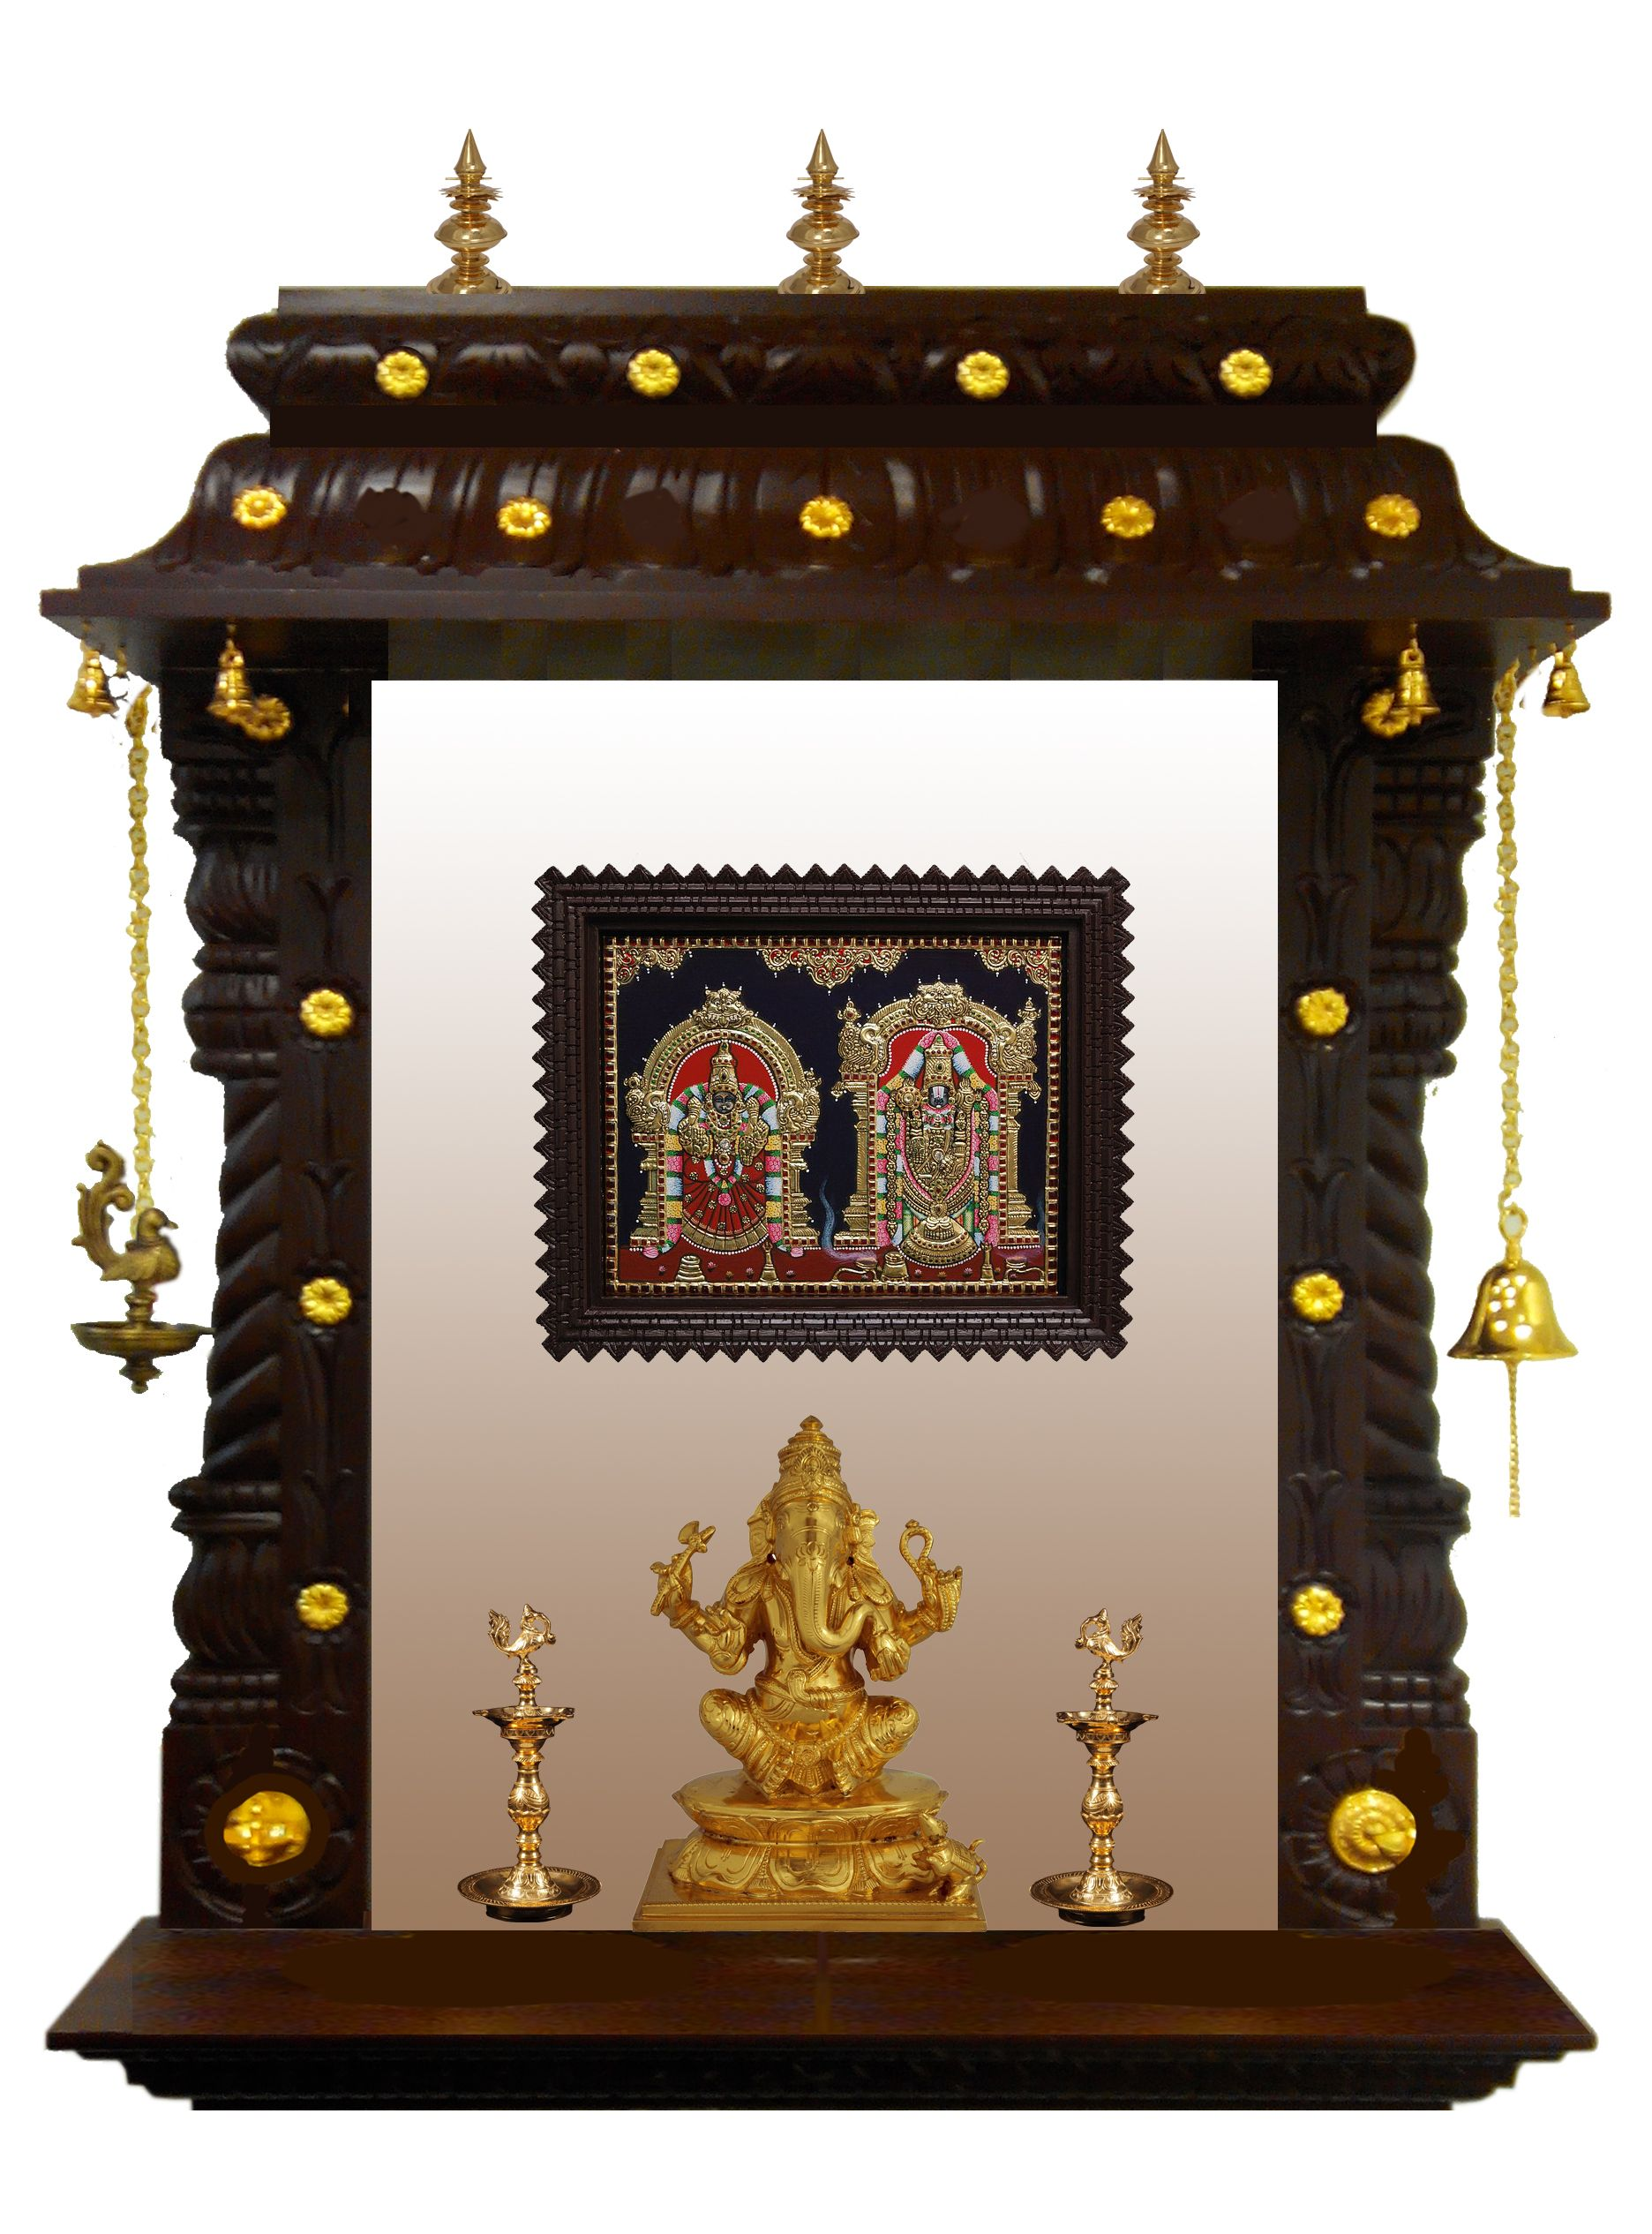 Pin By Mantra Gold Coatings On Pooja Room Puja Pinterest Puja Room Room And Woods